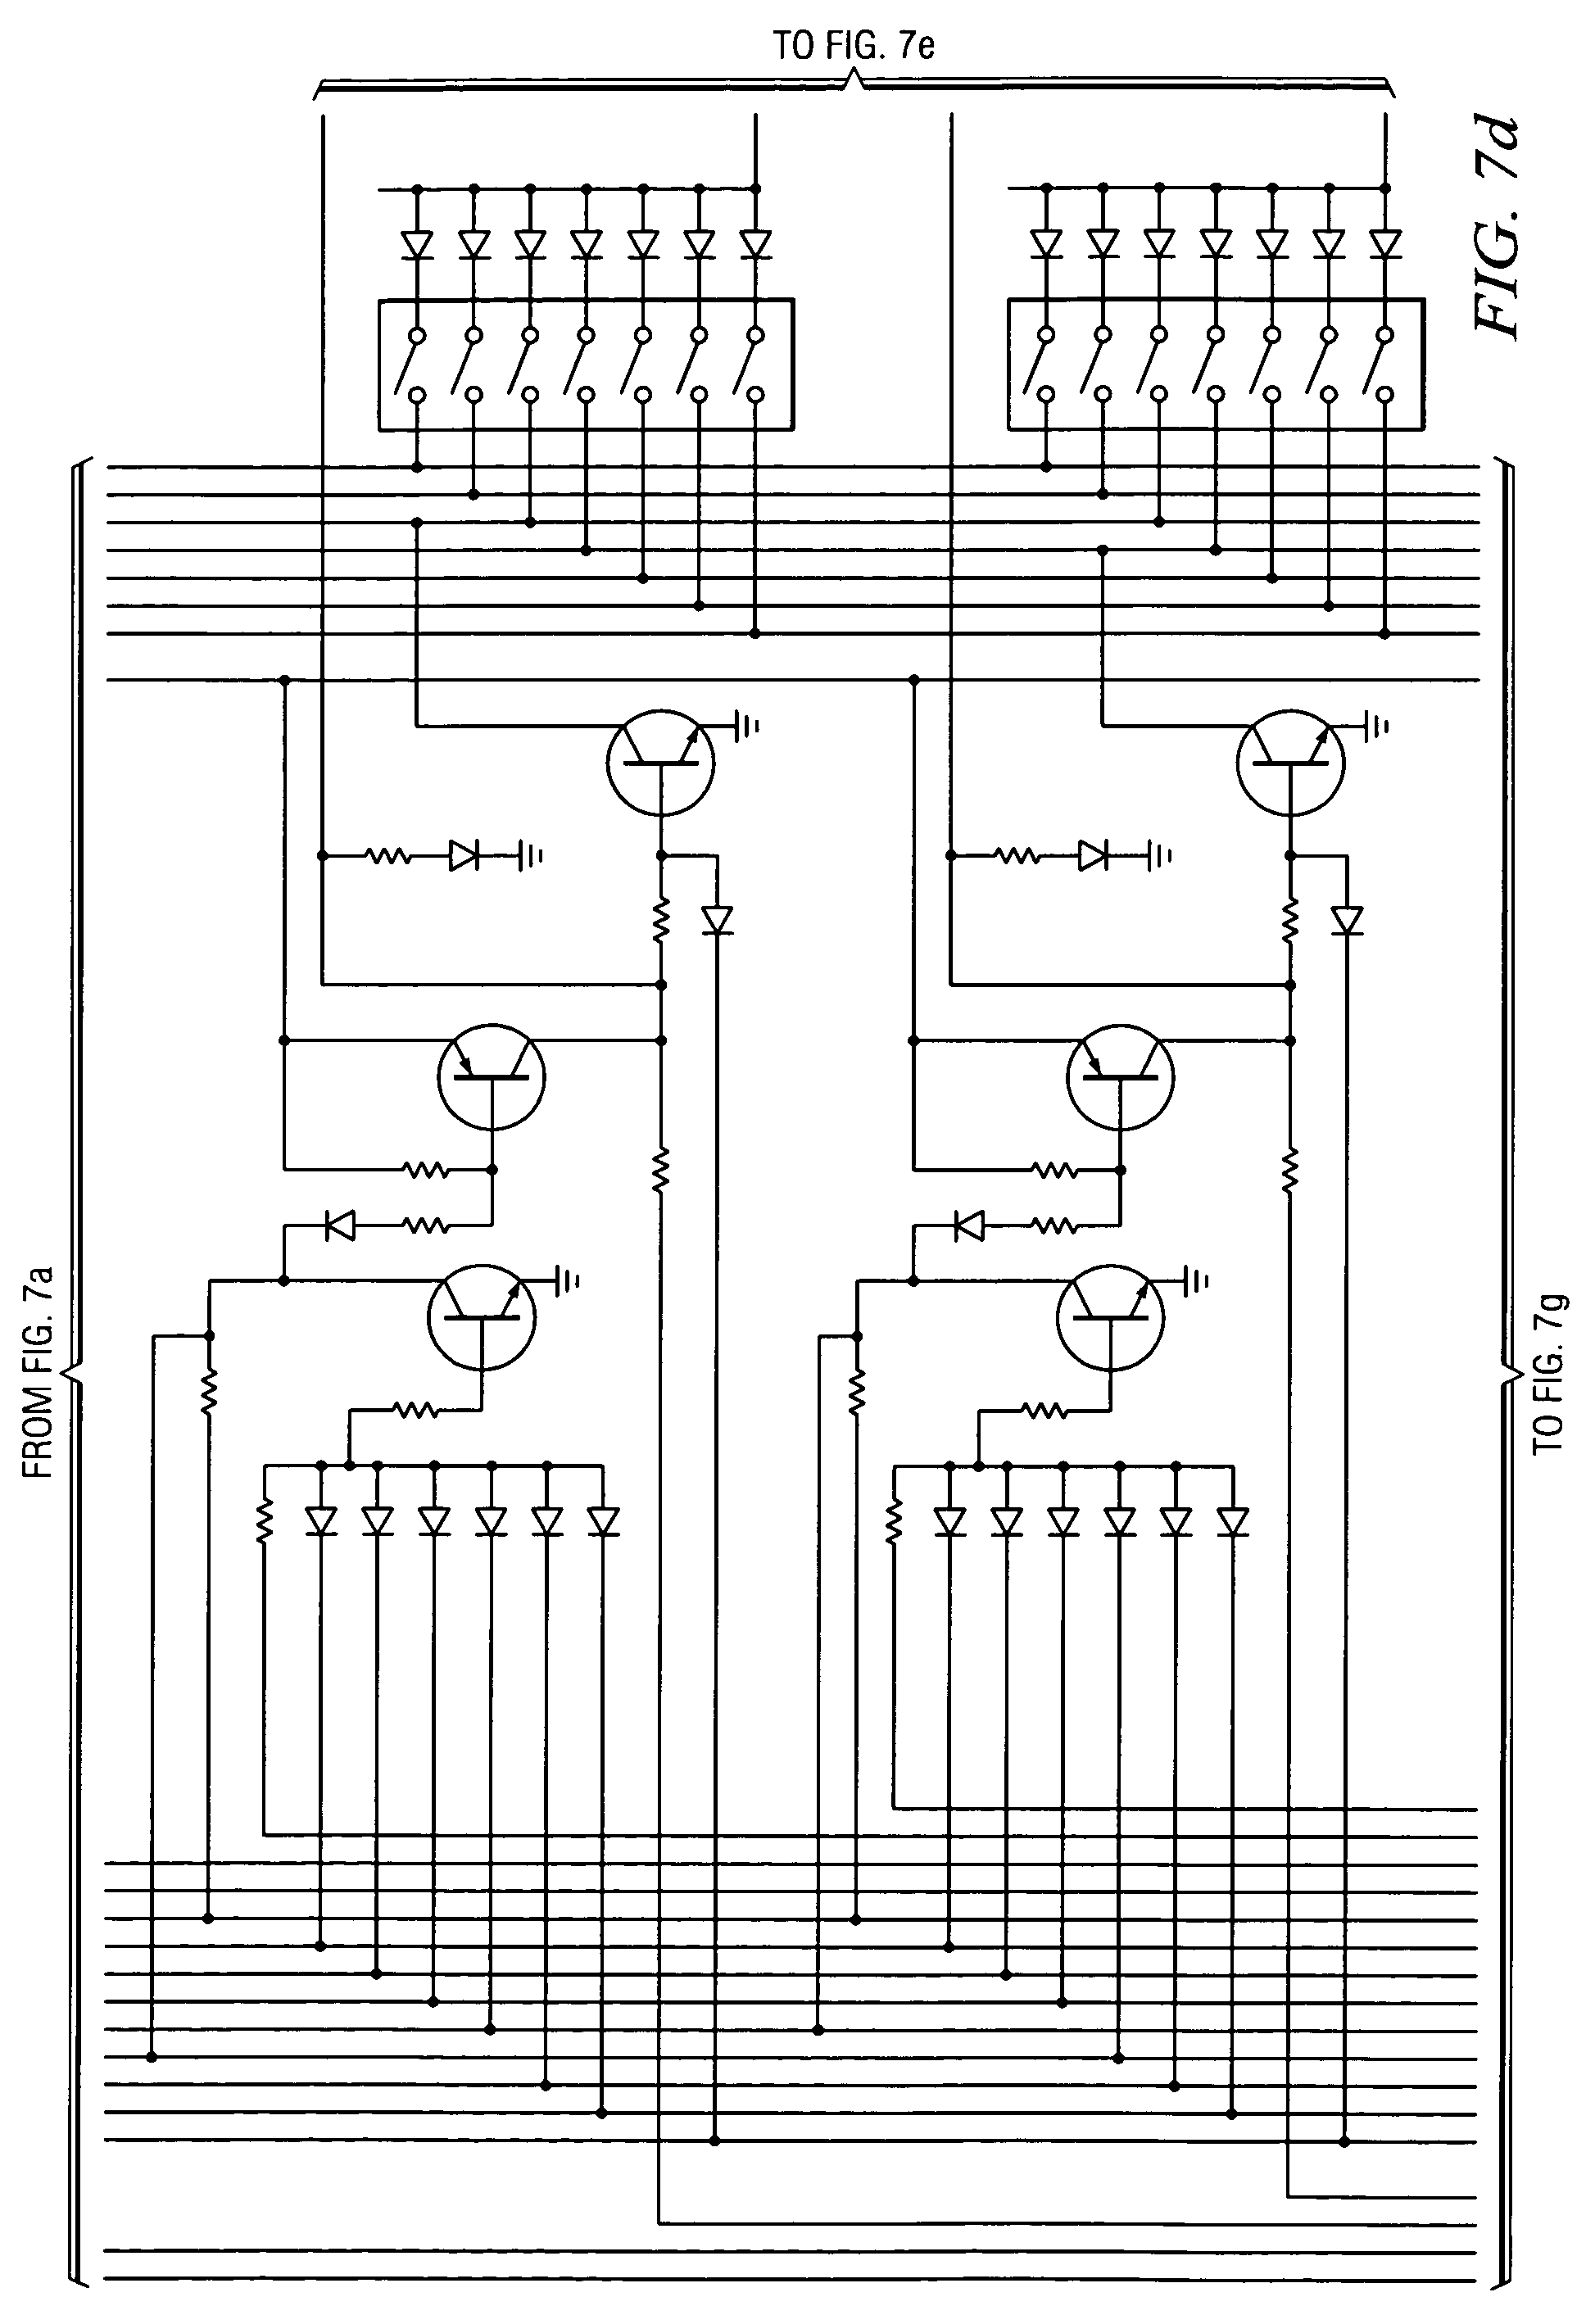 Horton Ambulance Wiring Diagram Series 3 Explained Diagrams Furnace Blower Http Pic2flycom Furnaceblowerwiring Wire Center U2022